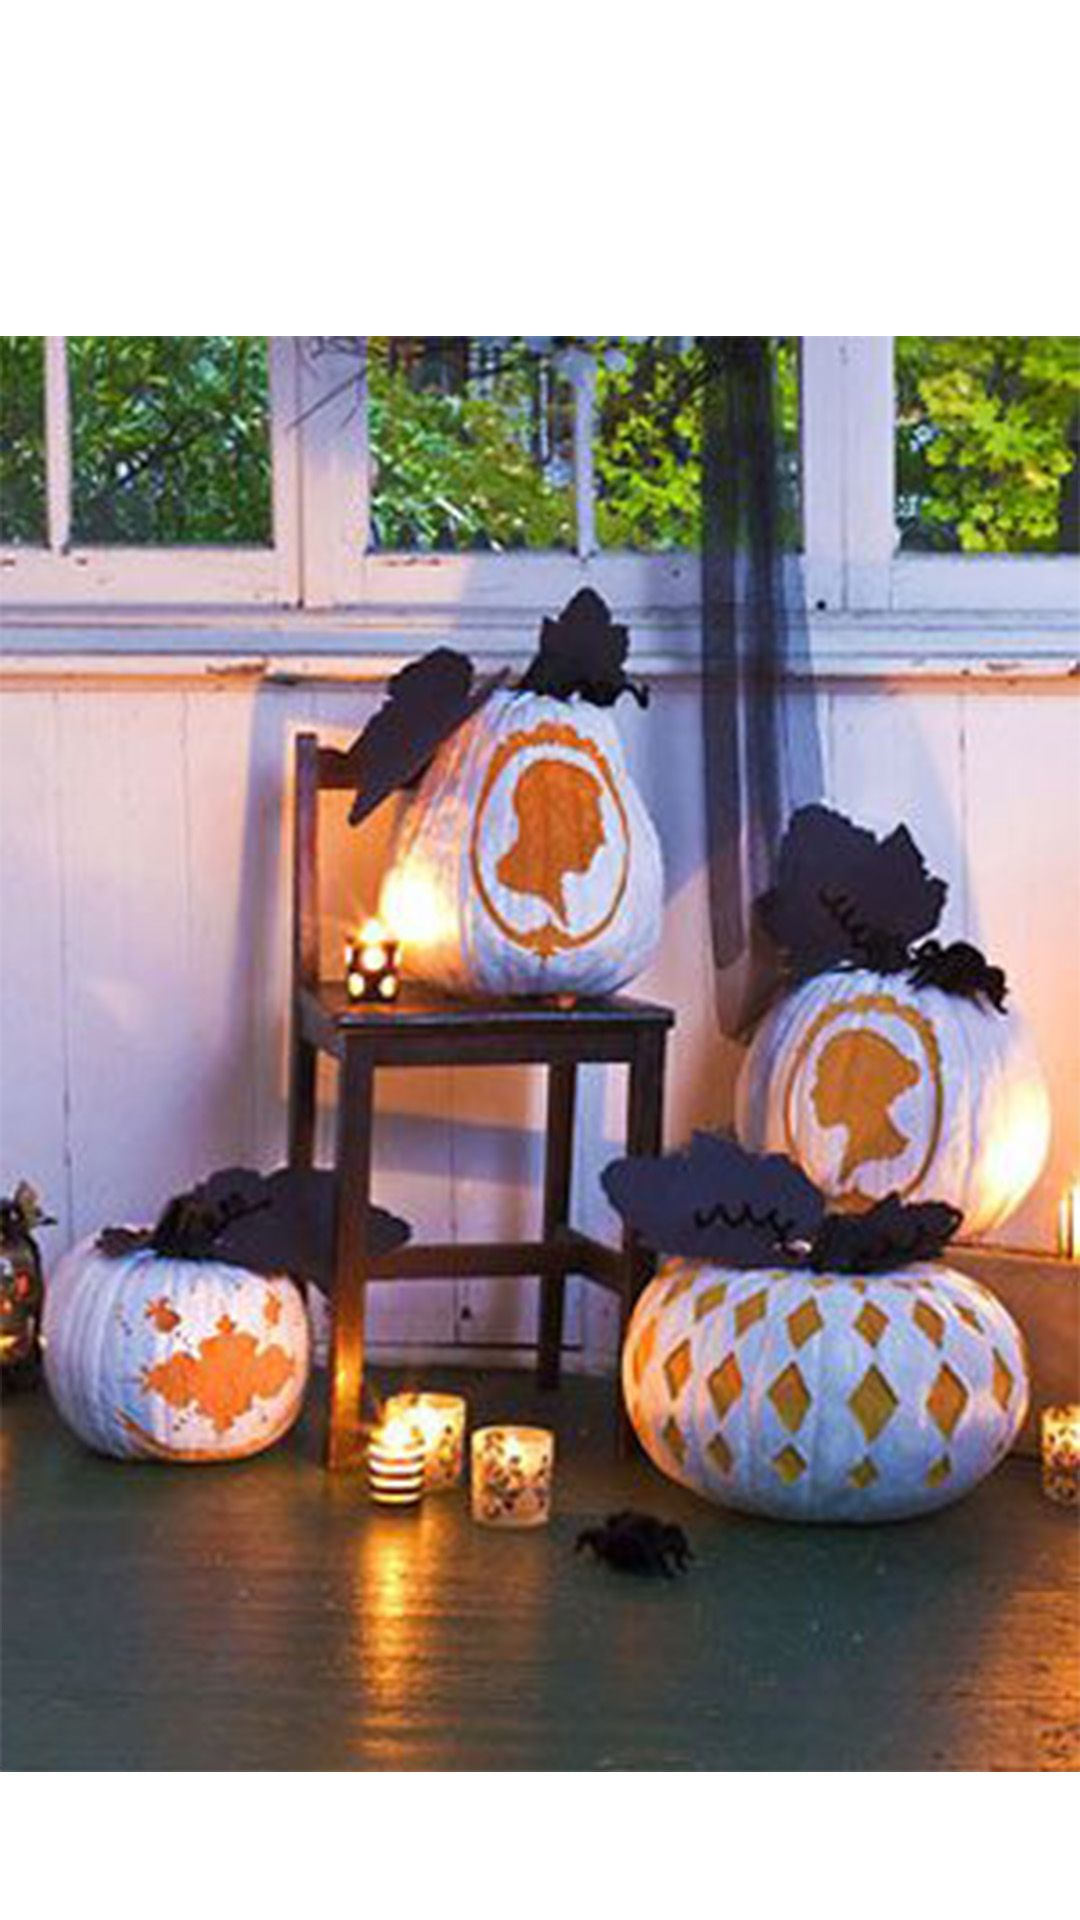 50 Easy Halloween Decorations 2020 — Spooky Home Decor Ideas